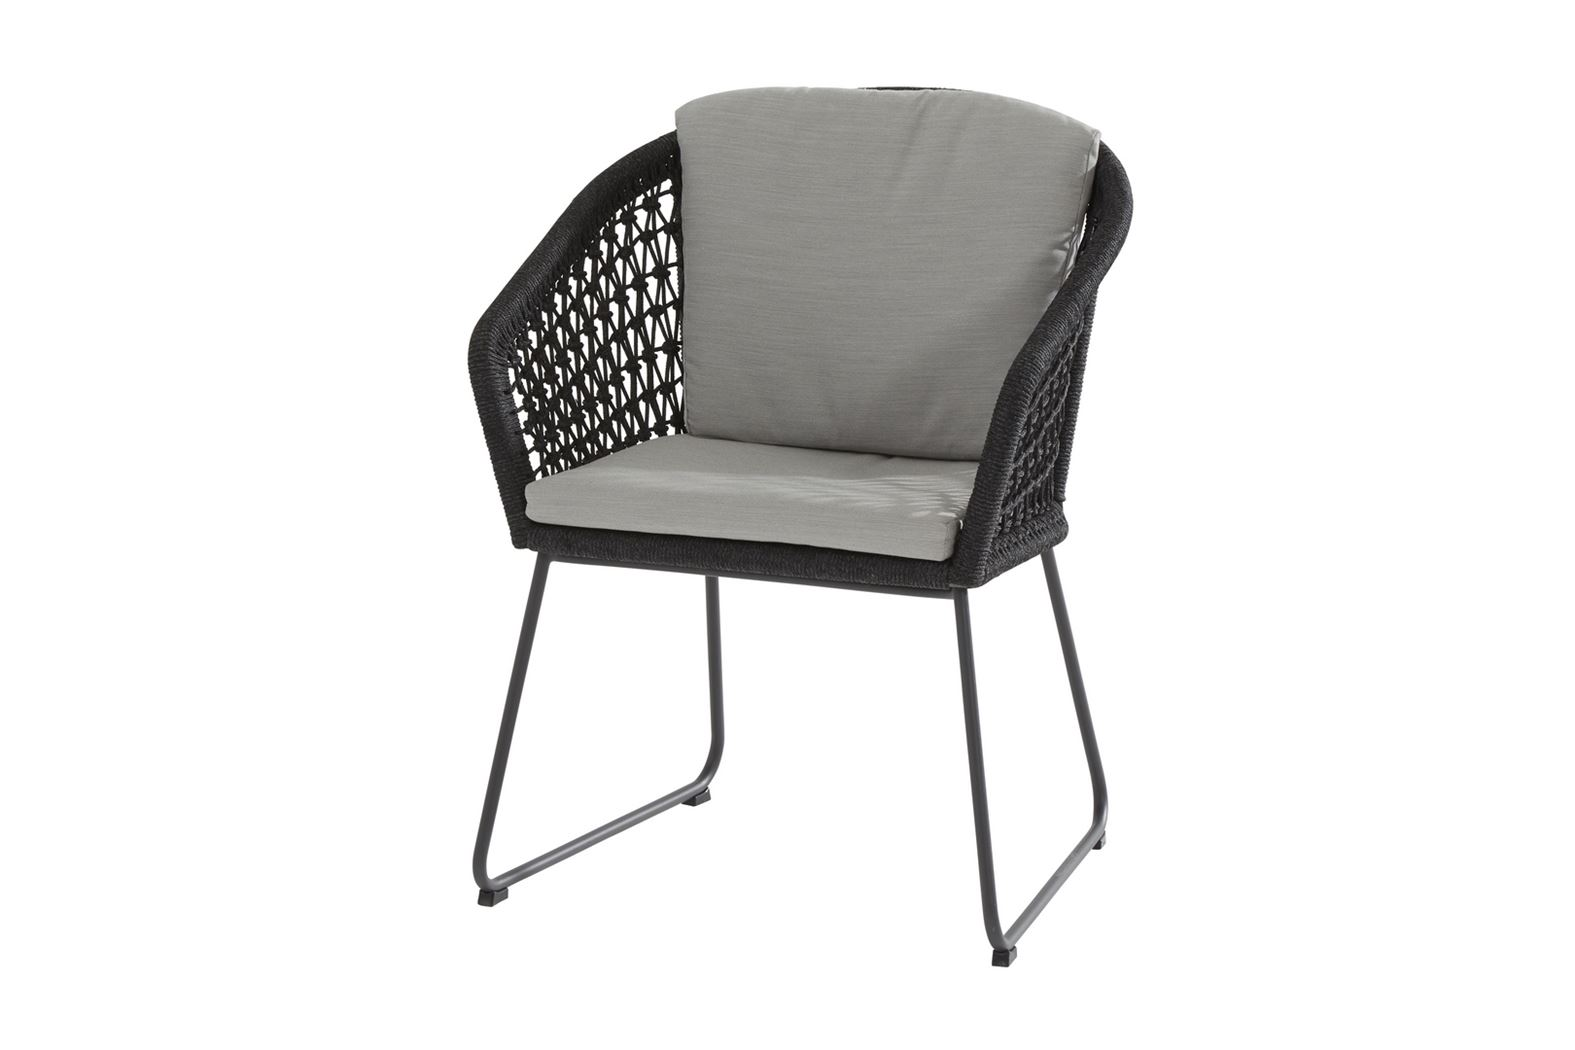 4so mila dining chair stainless steel anthracite rope with 2 cushions knotted rope